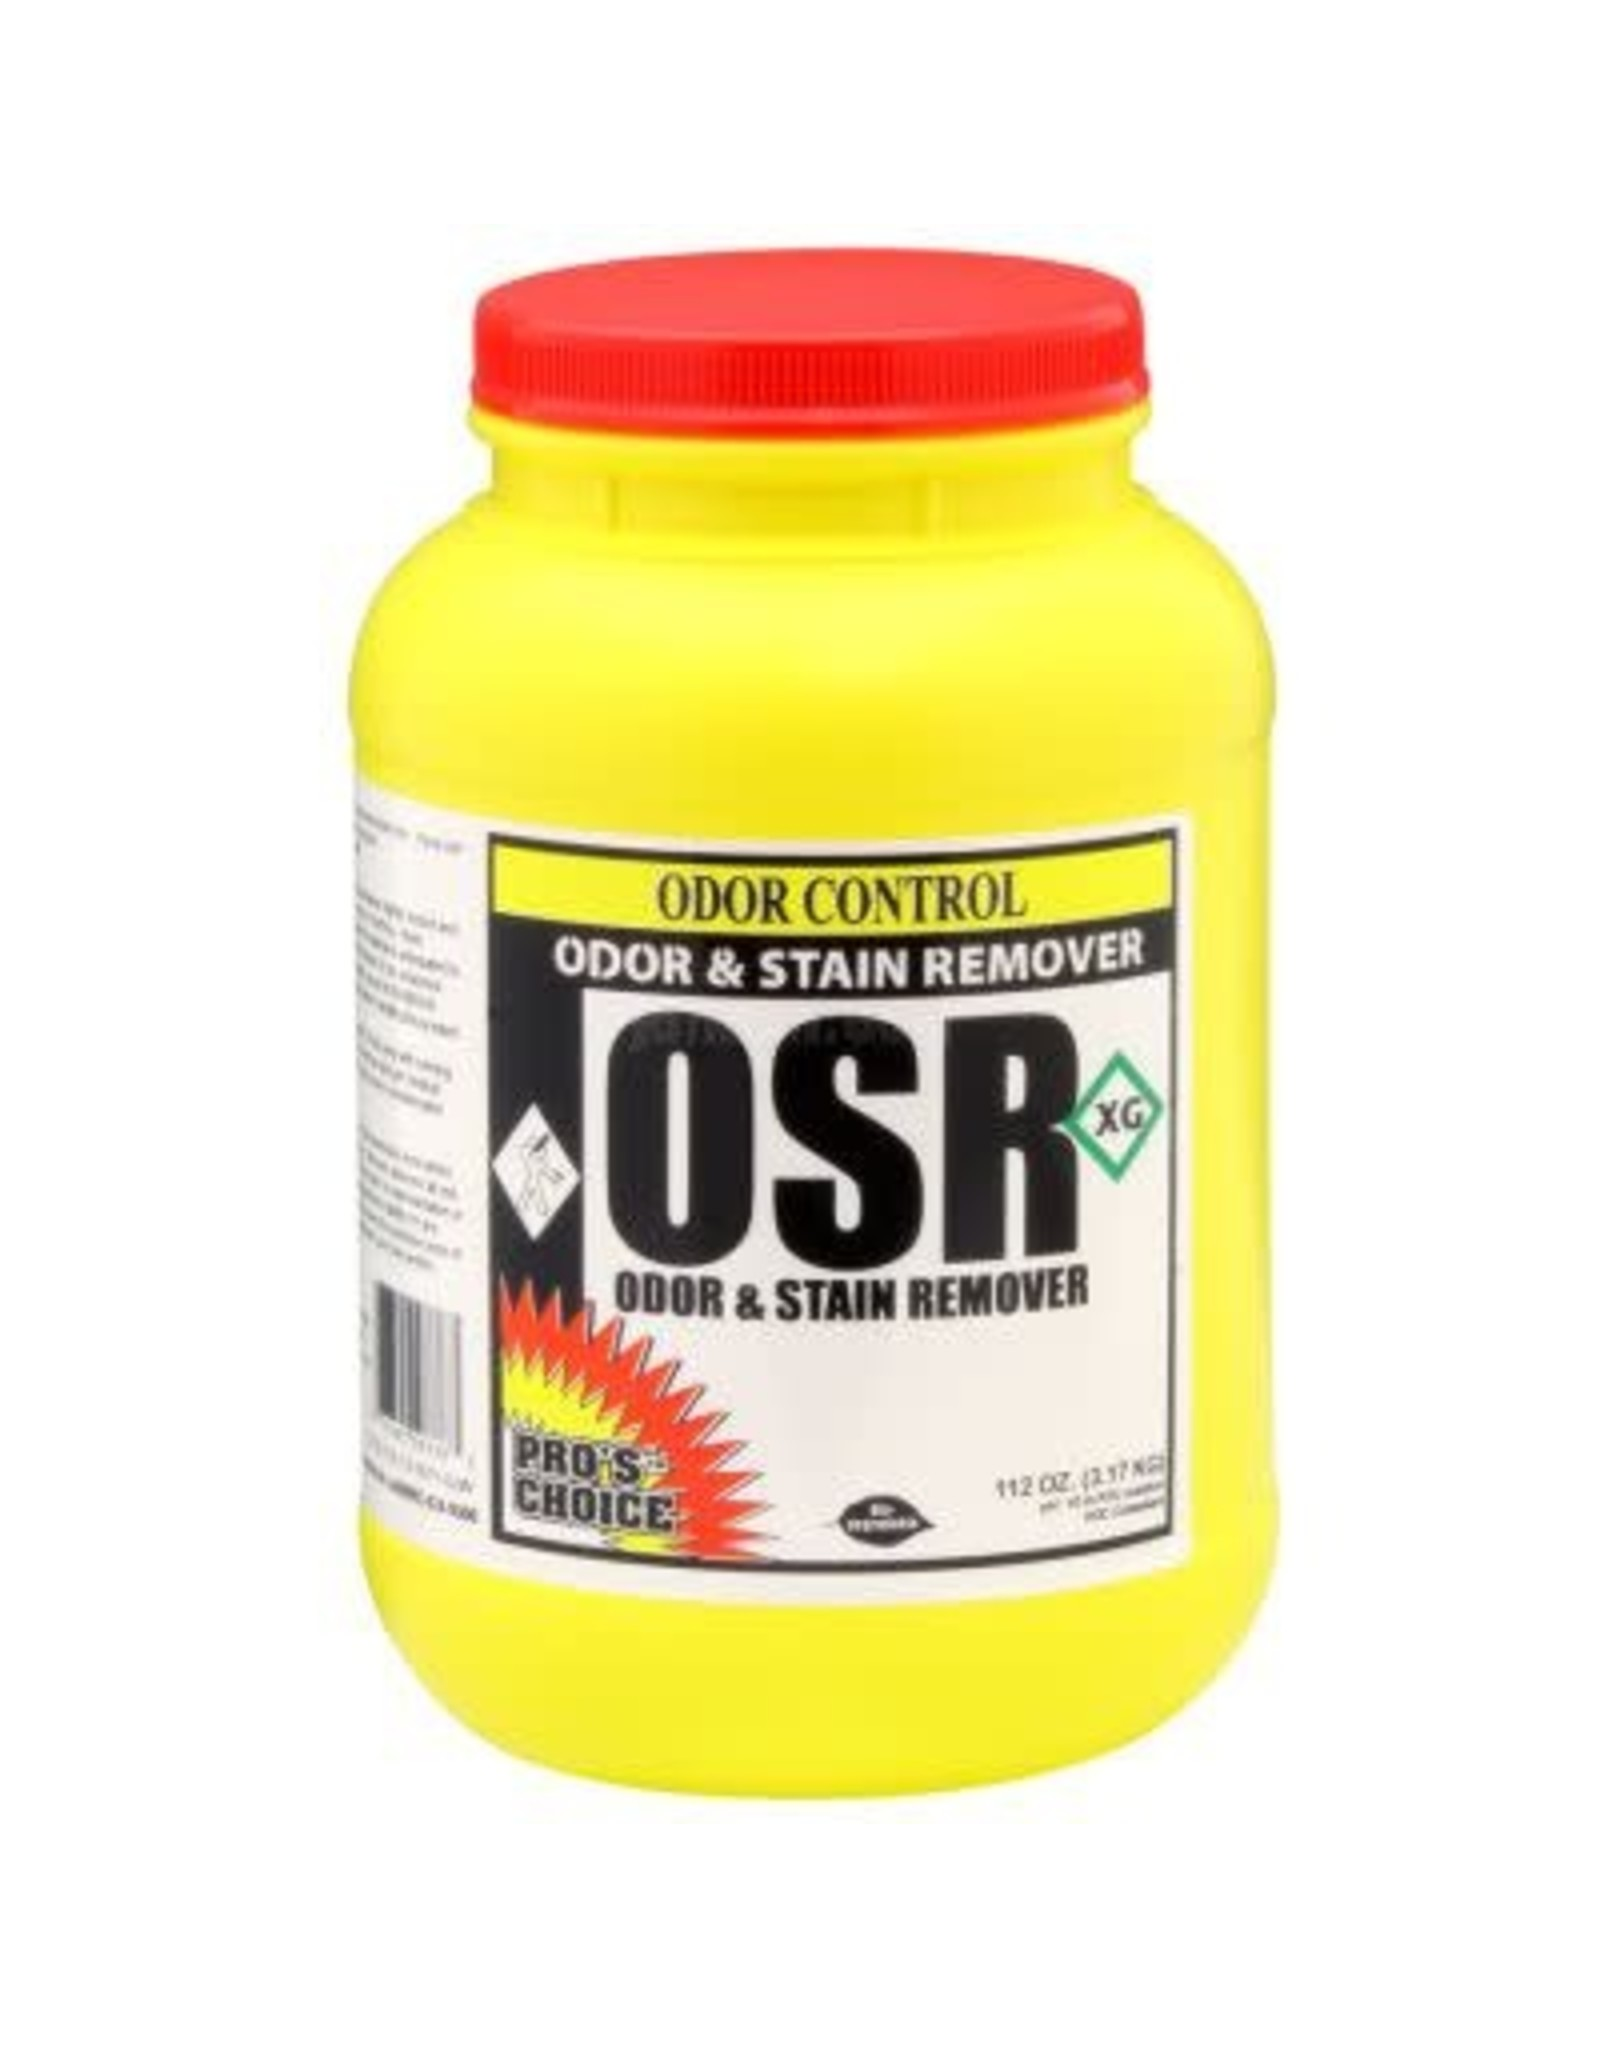 Pro's Choice OSR- Odor & Stain Removal